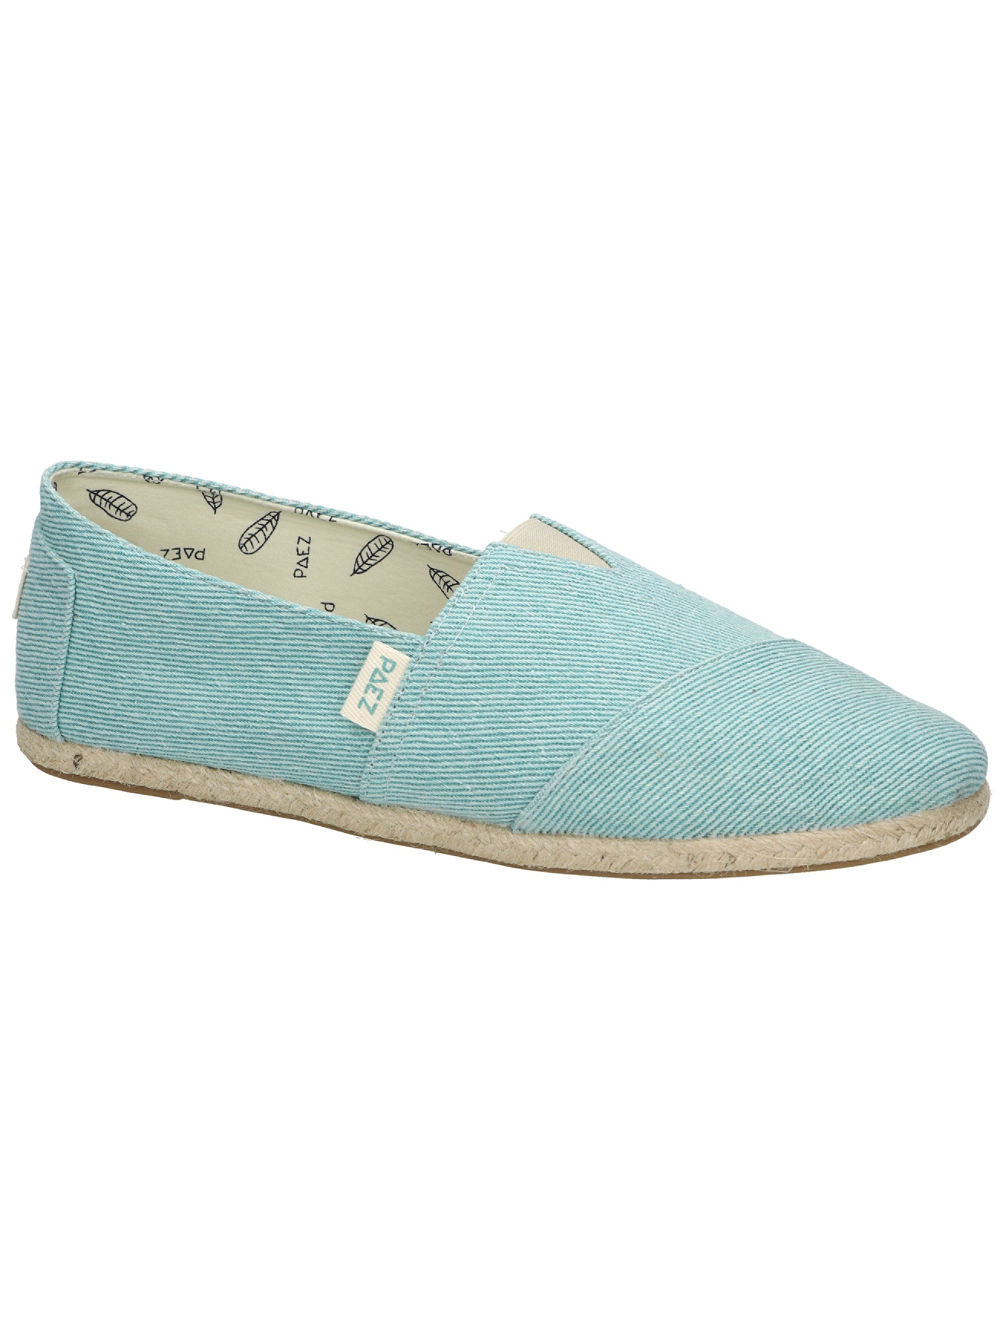 Original Raw Slippers Women